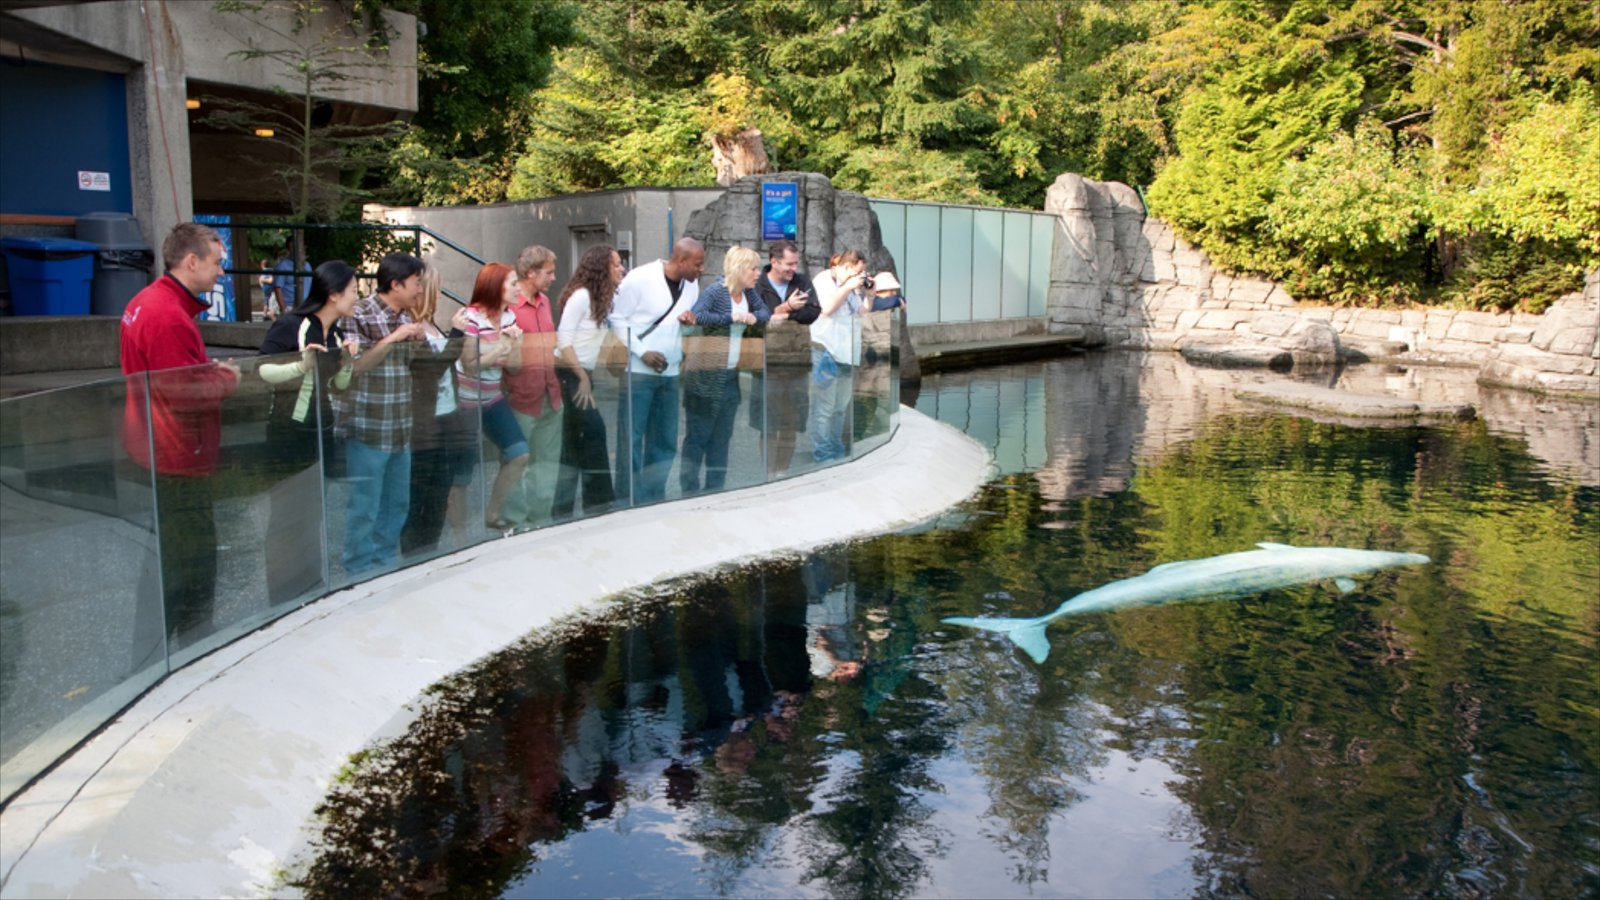 Fish aquarium vancouver - Vancouver Aquarium Which Includes A Pool Marine Life And A Waterpark